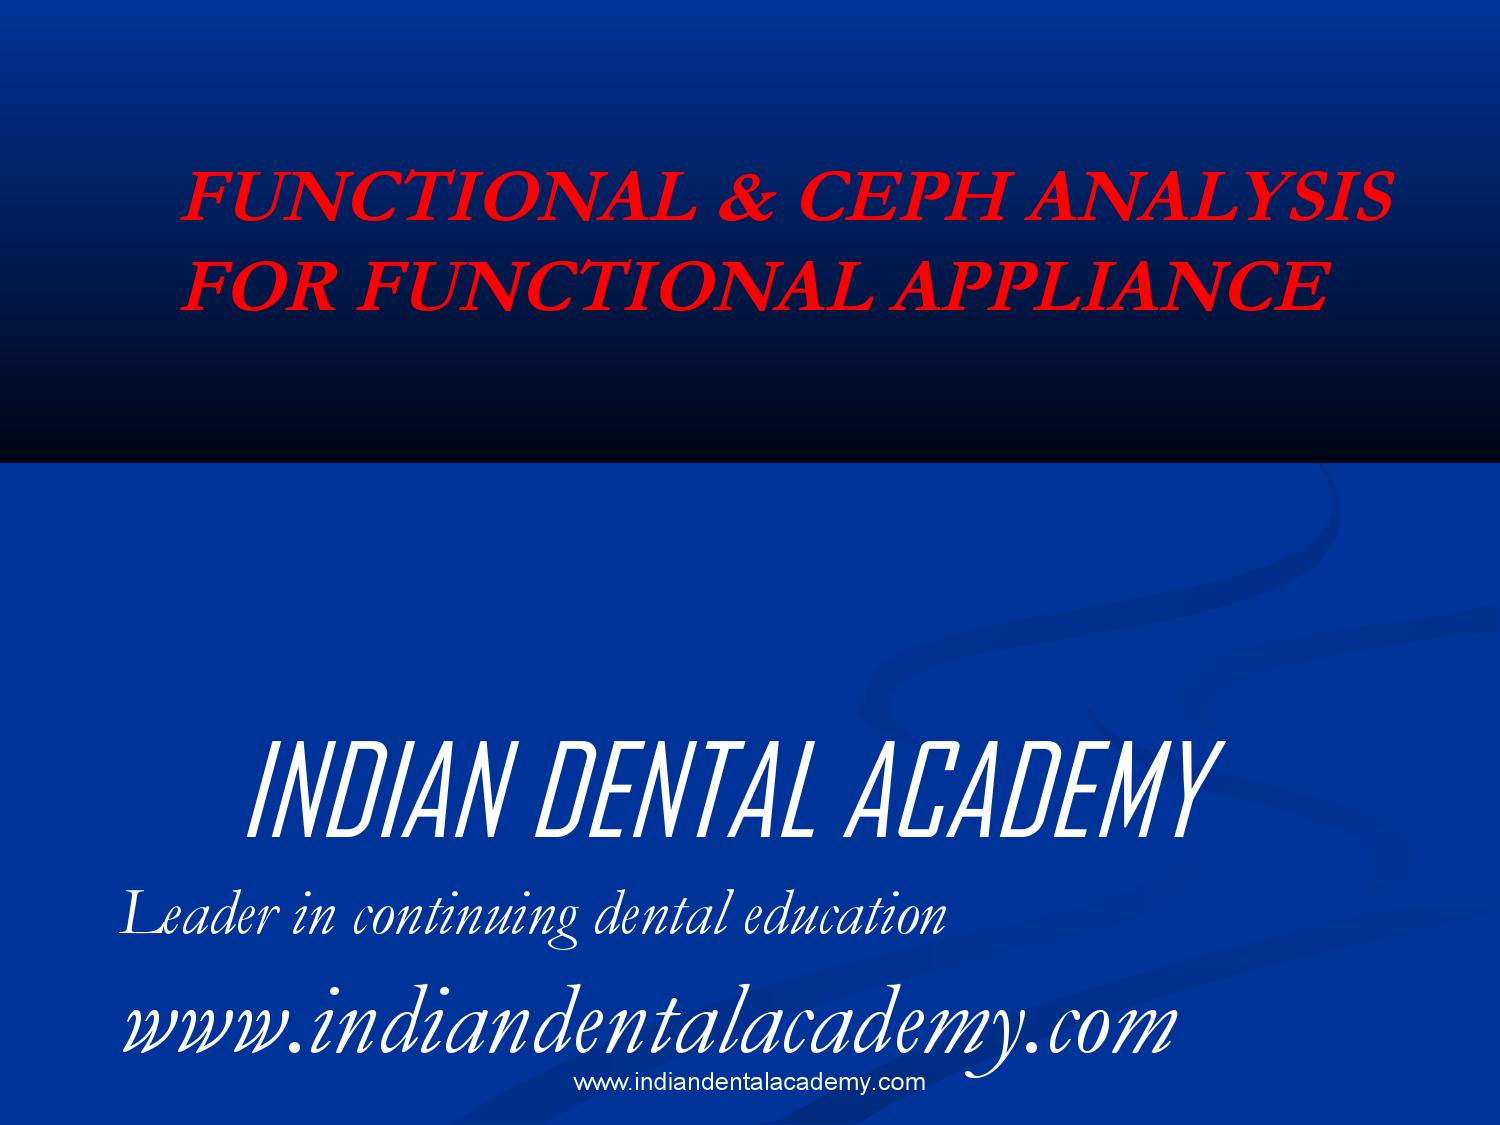 Functional & ceph analysis for functional / dental implant